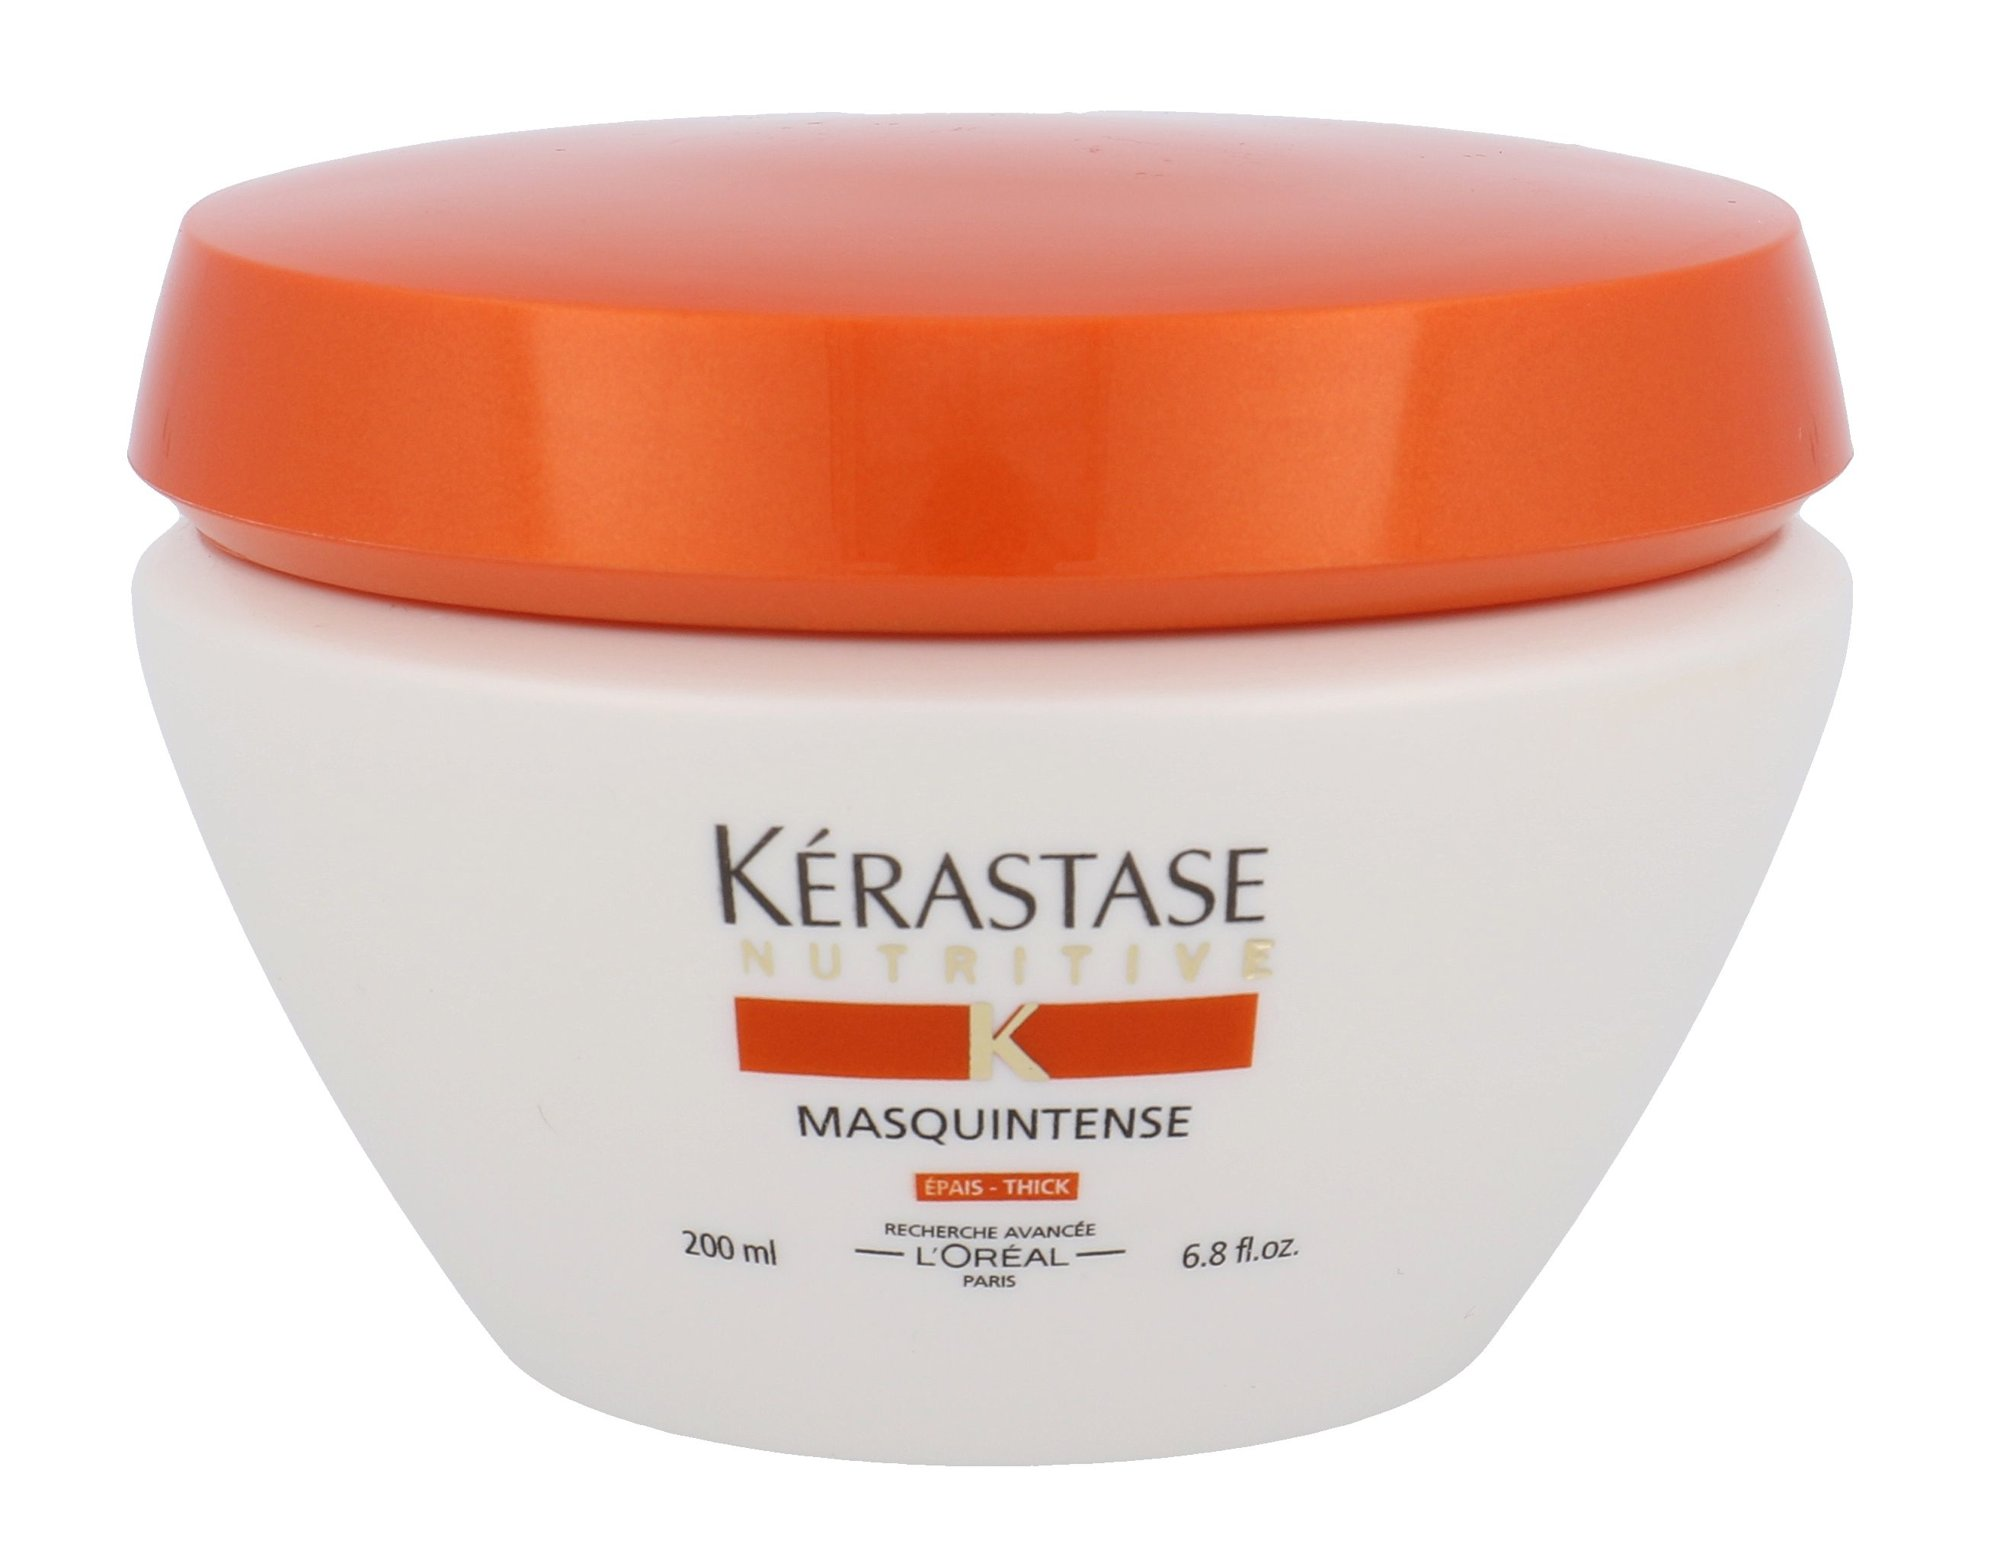 Kérastase Nutritive Cosmetic 200ml  Masquintense Irisome